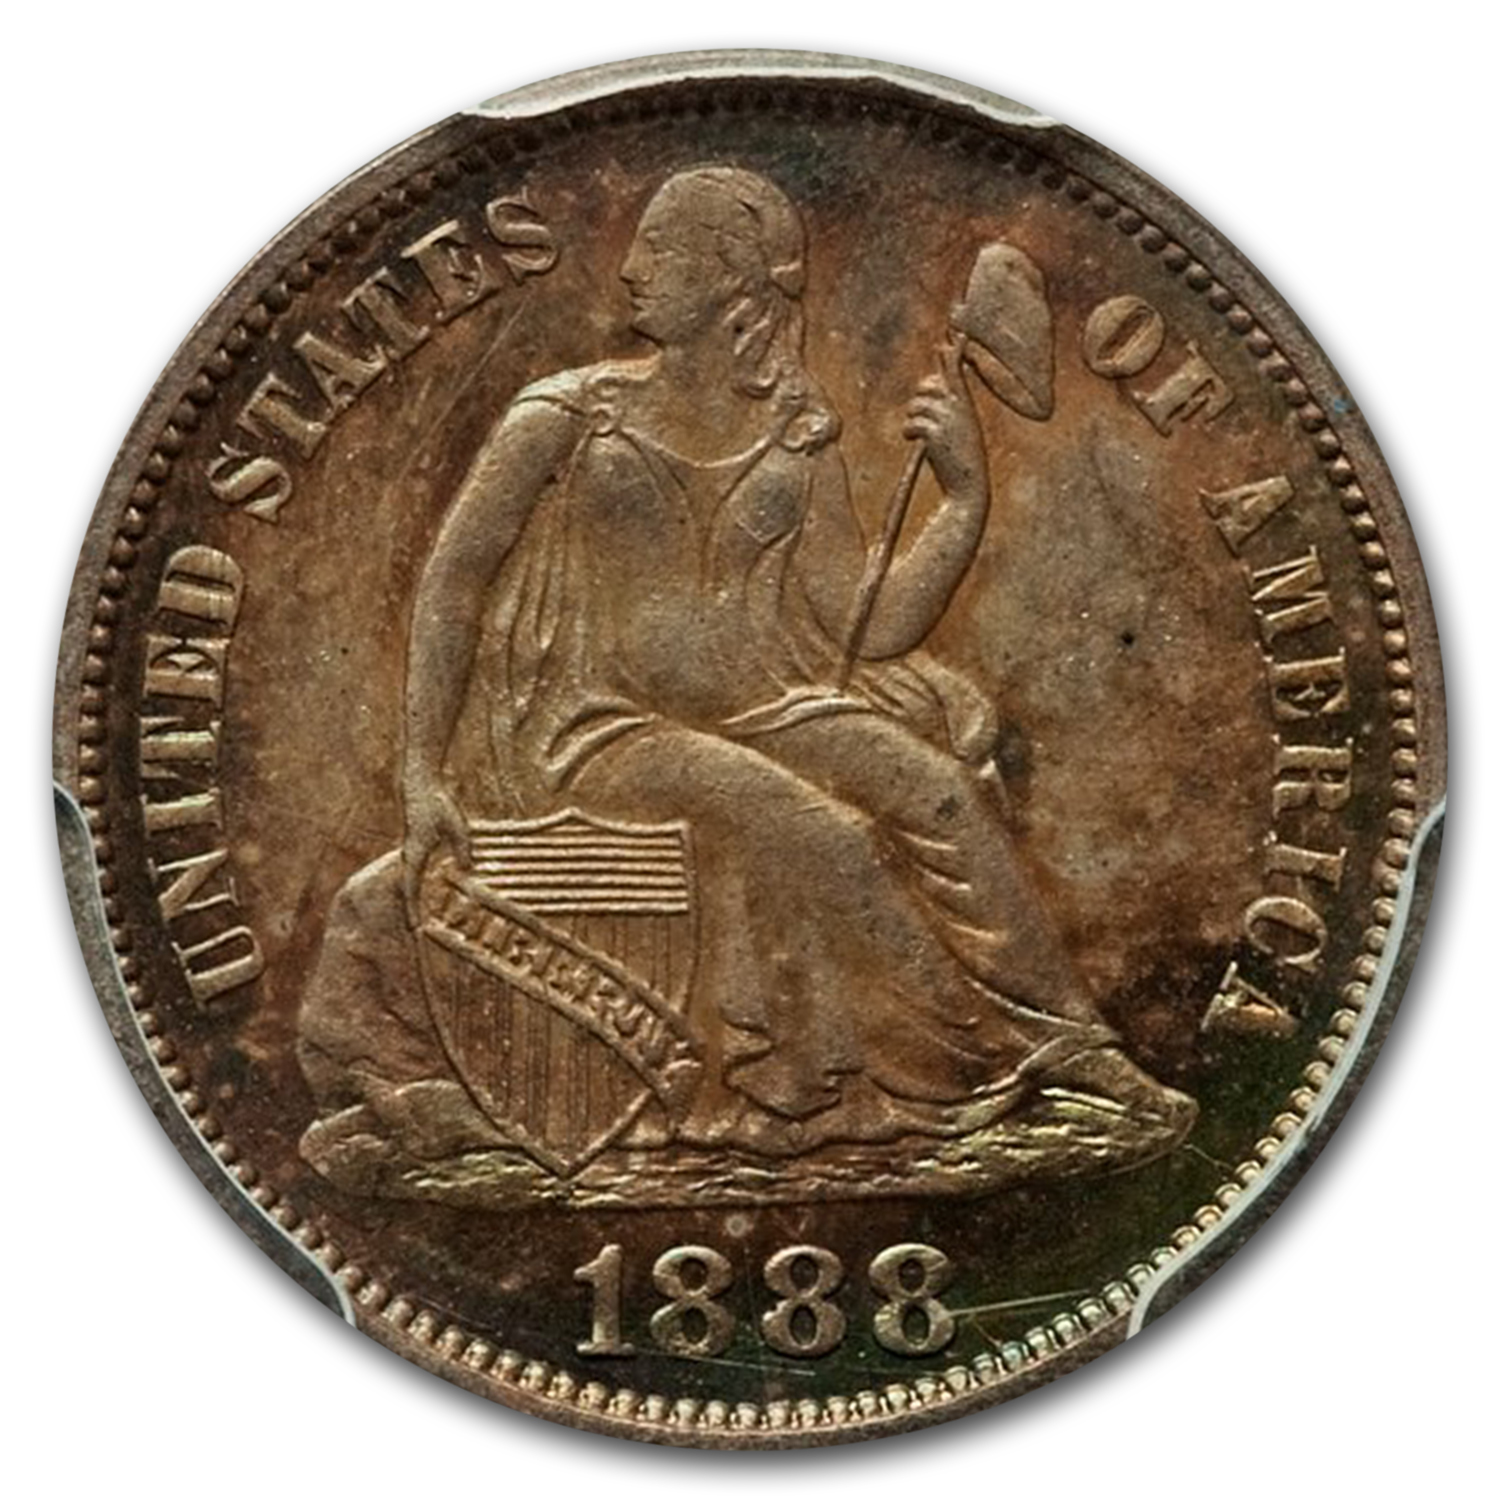 1888 Liberty Seated Dime PR-65 PCGS